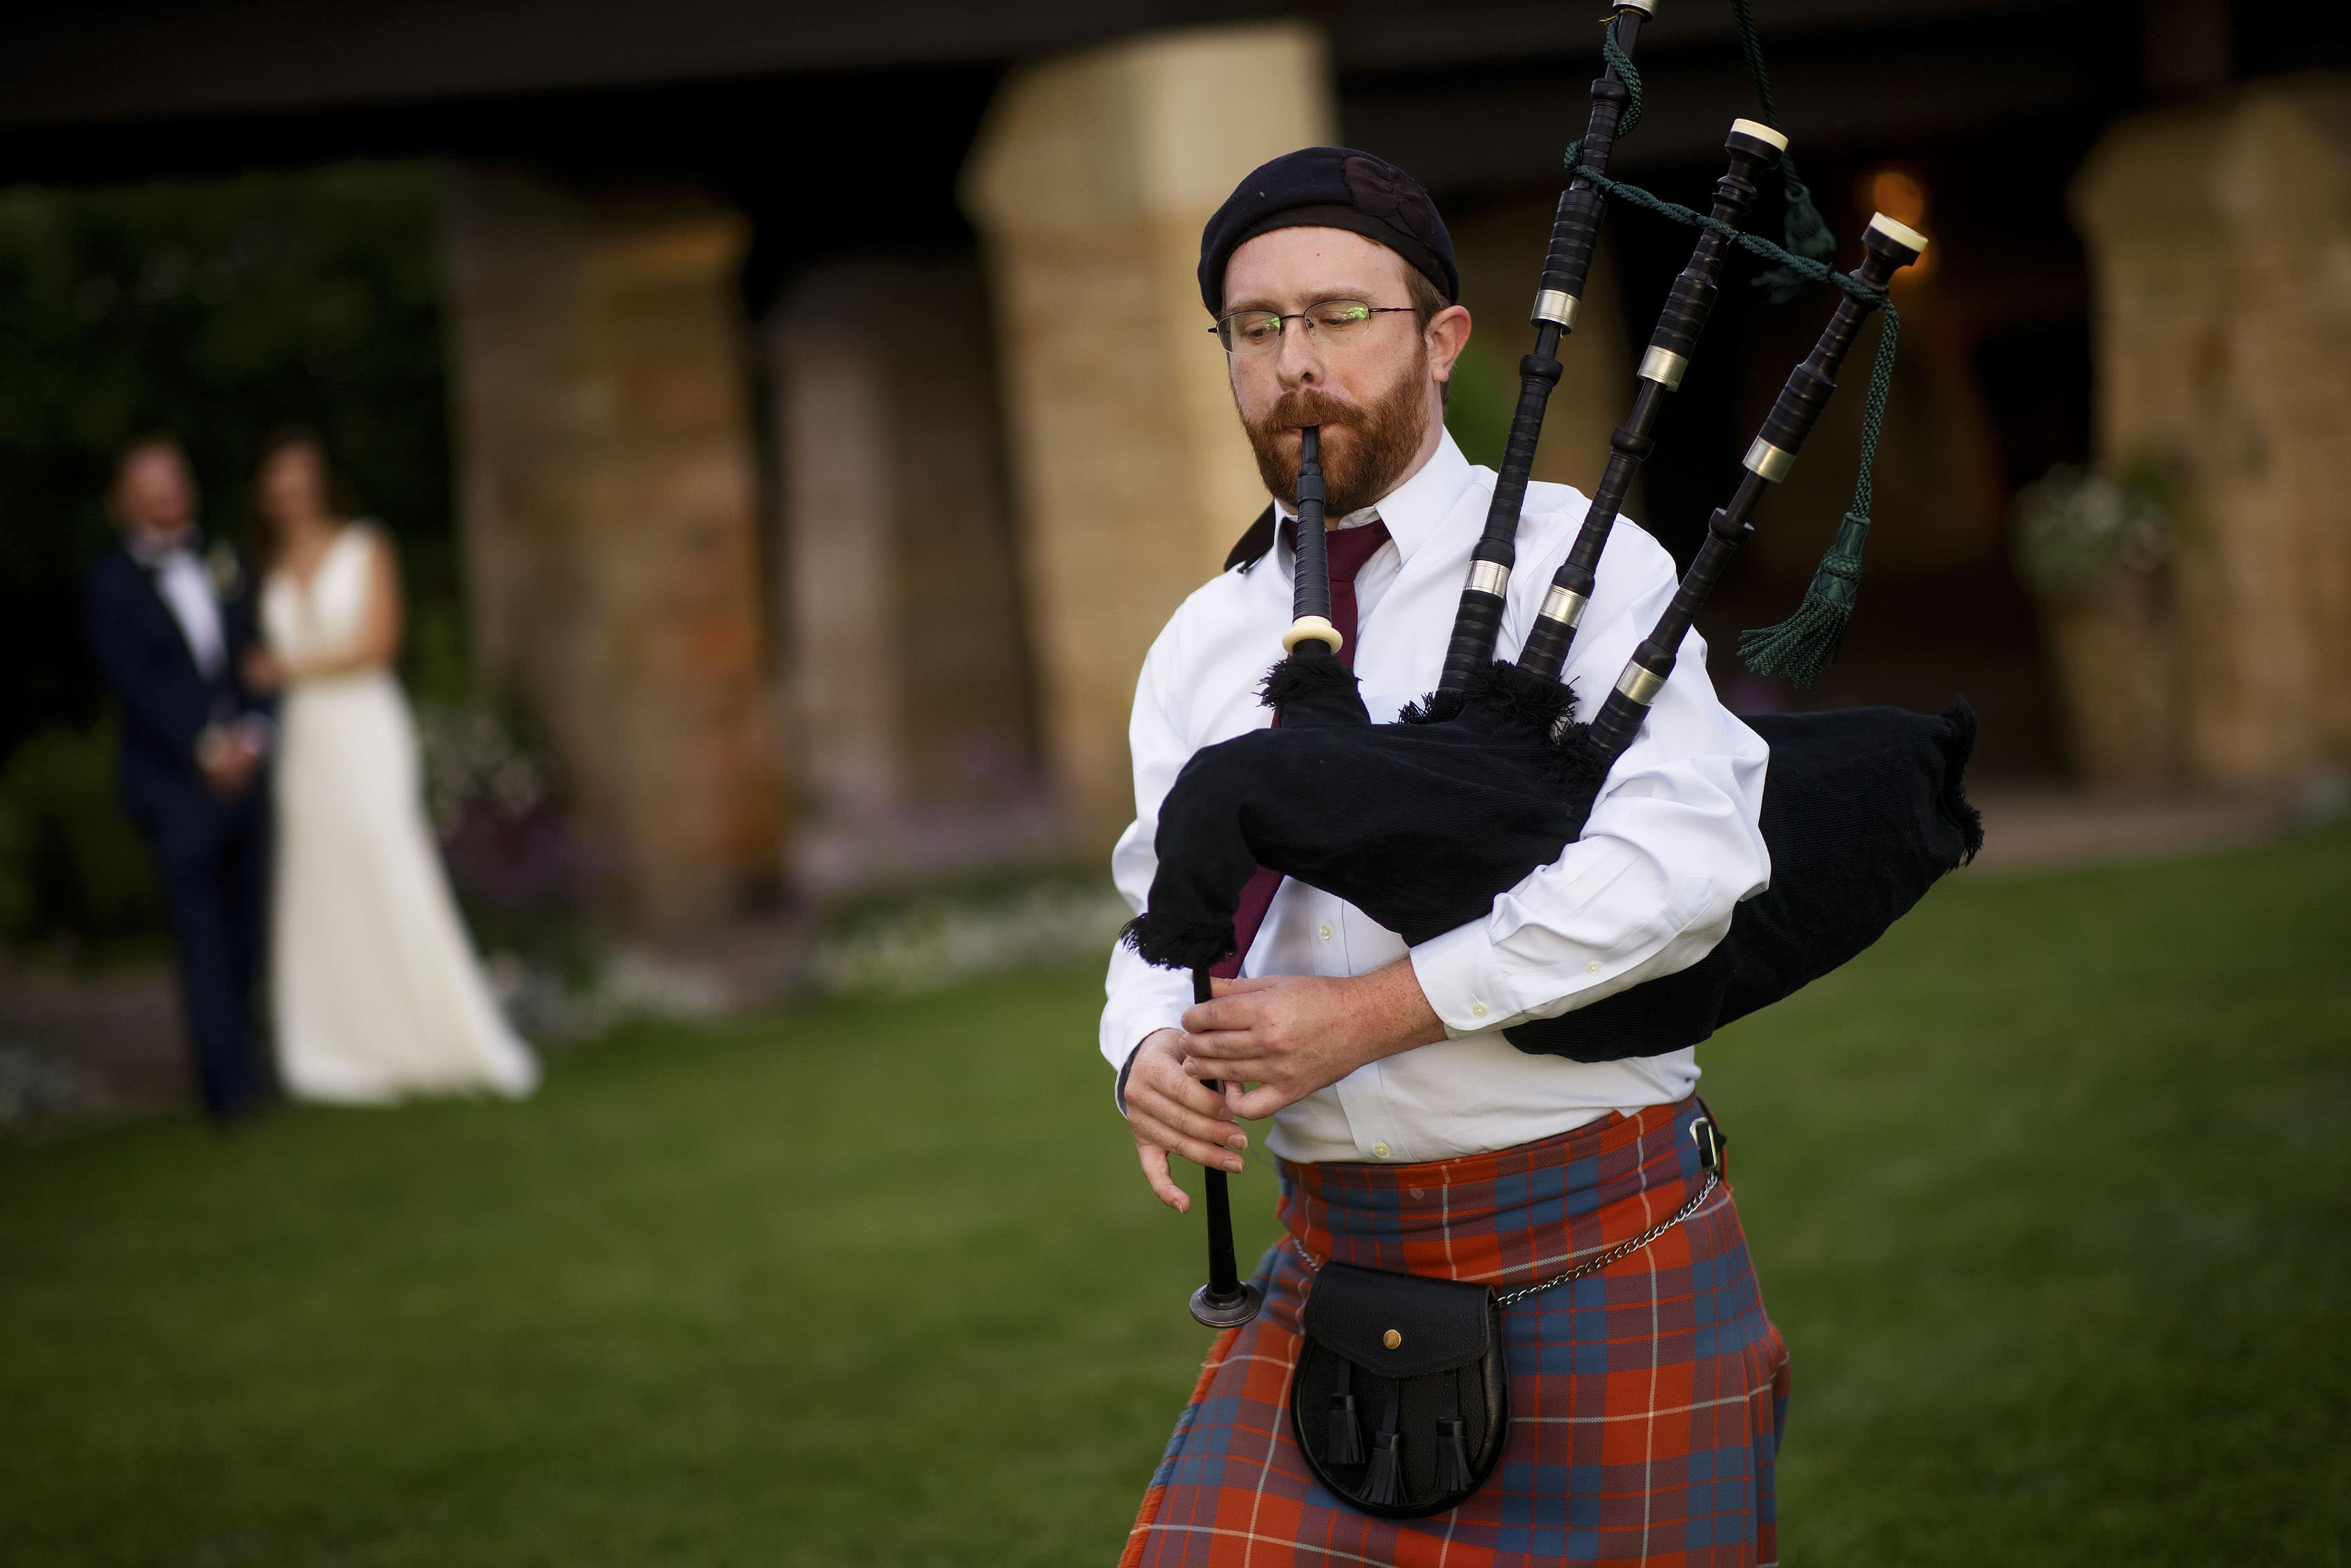 A bagpiper plays during Casey and DarrenÕs wedding reception at Sanctuary Golf Course